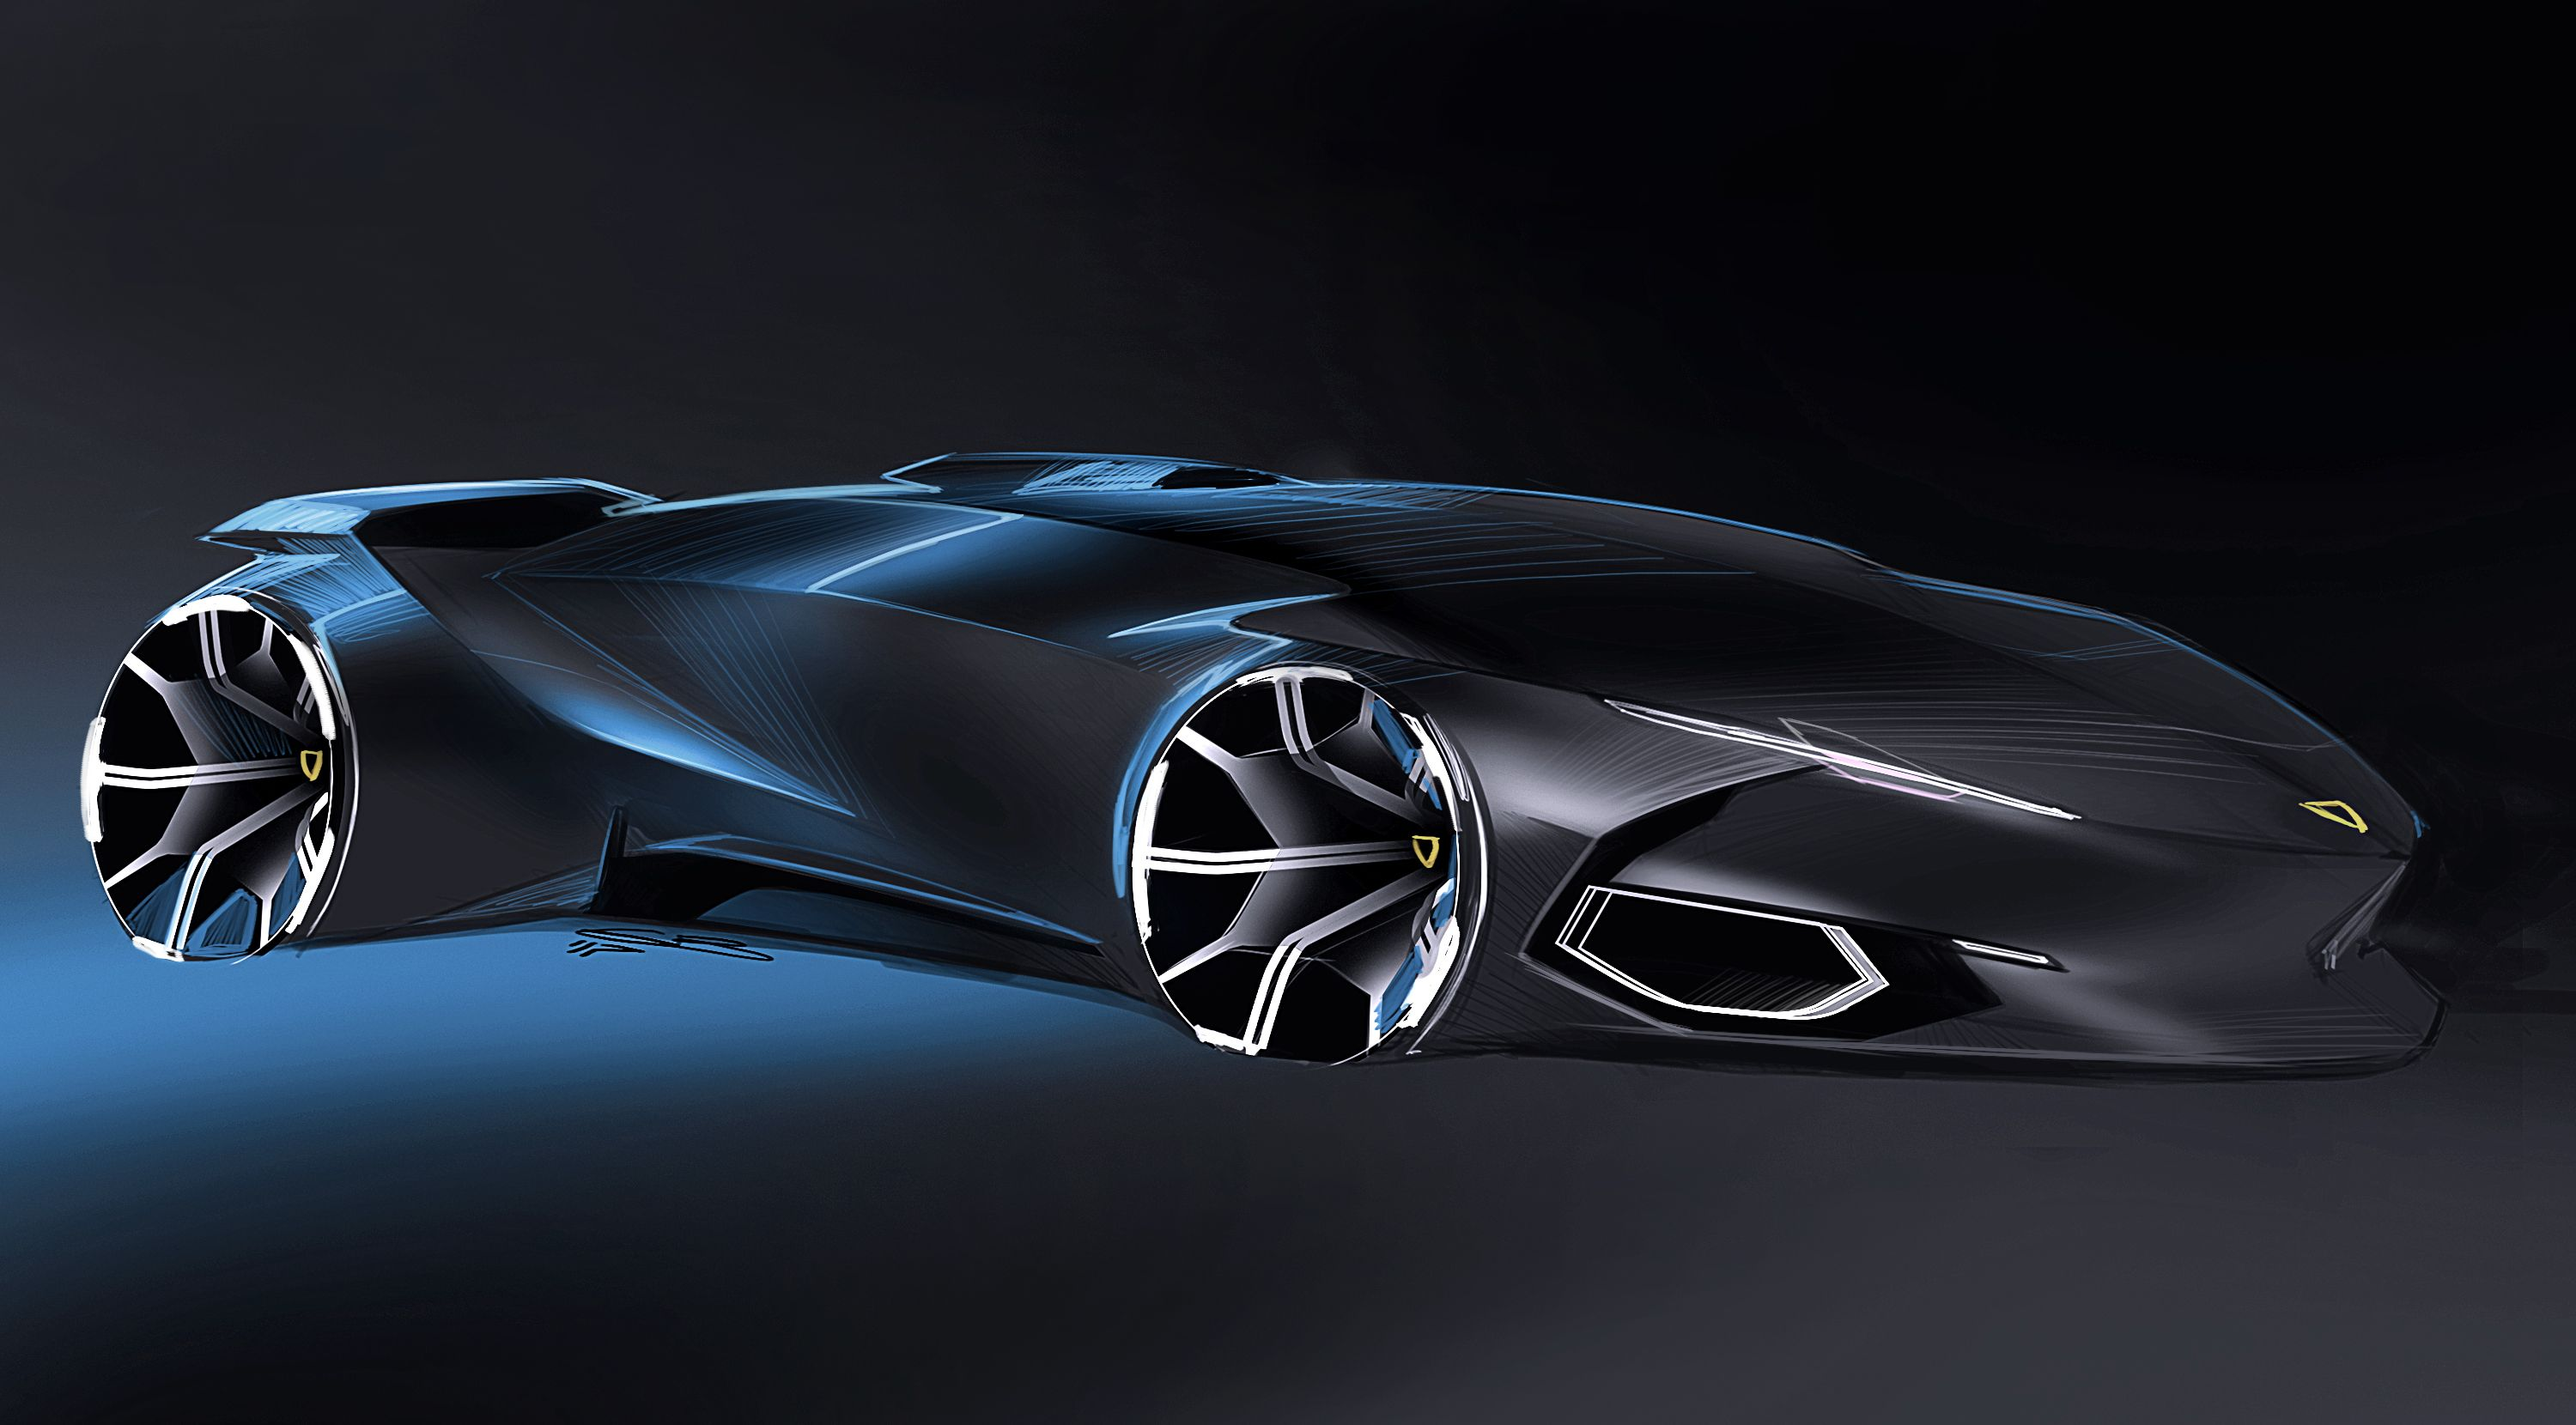 Car design sketches #8 on Behance